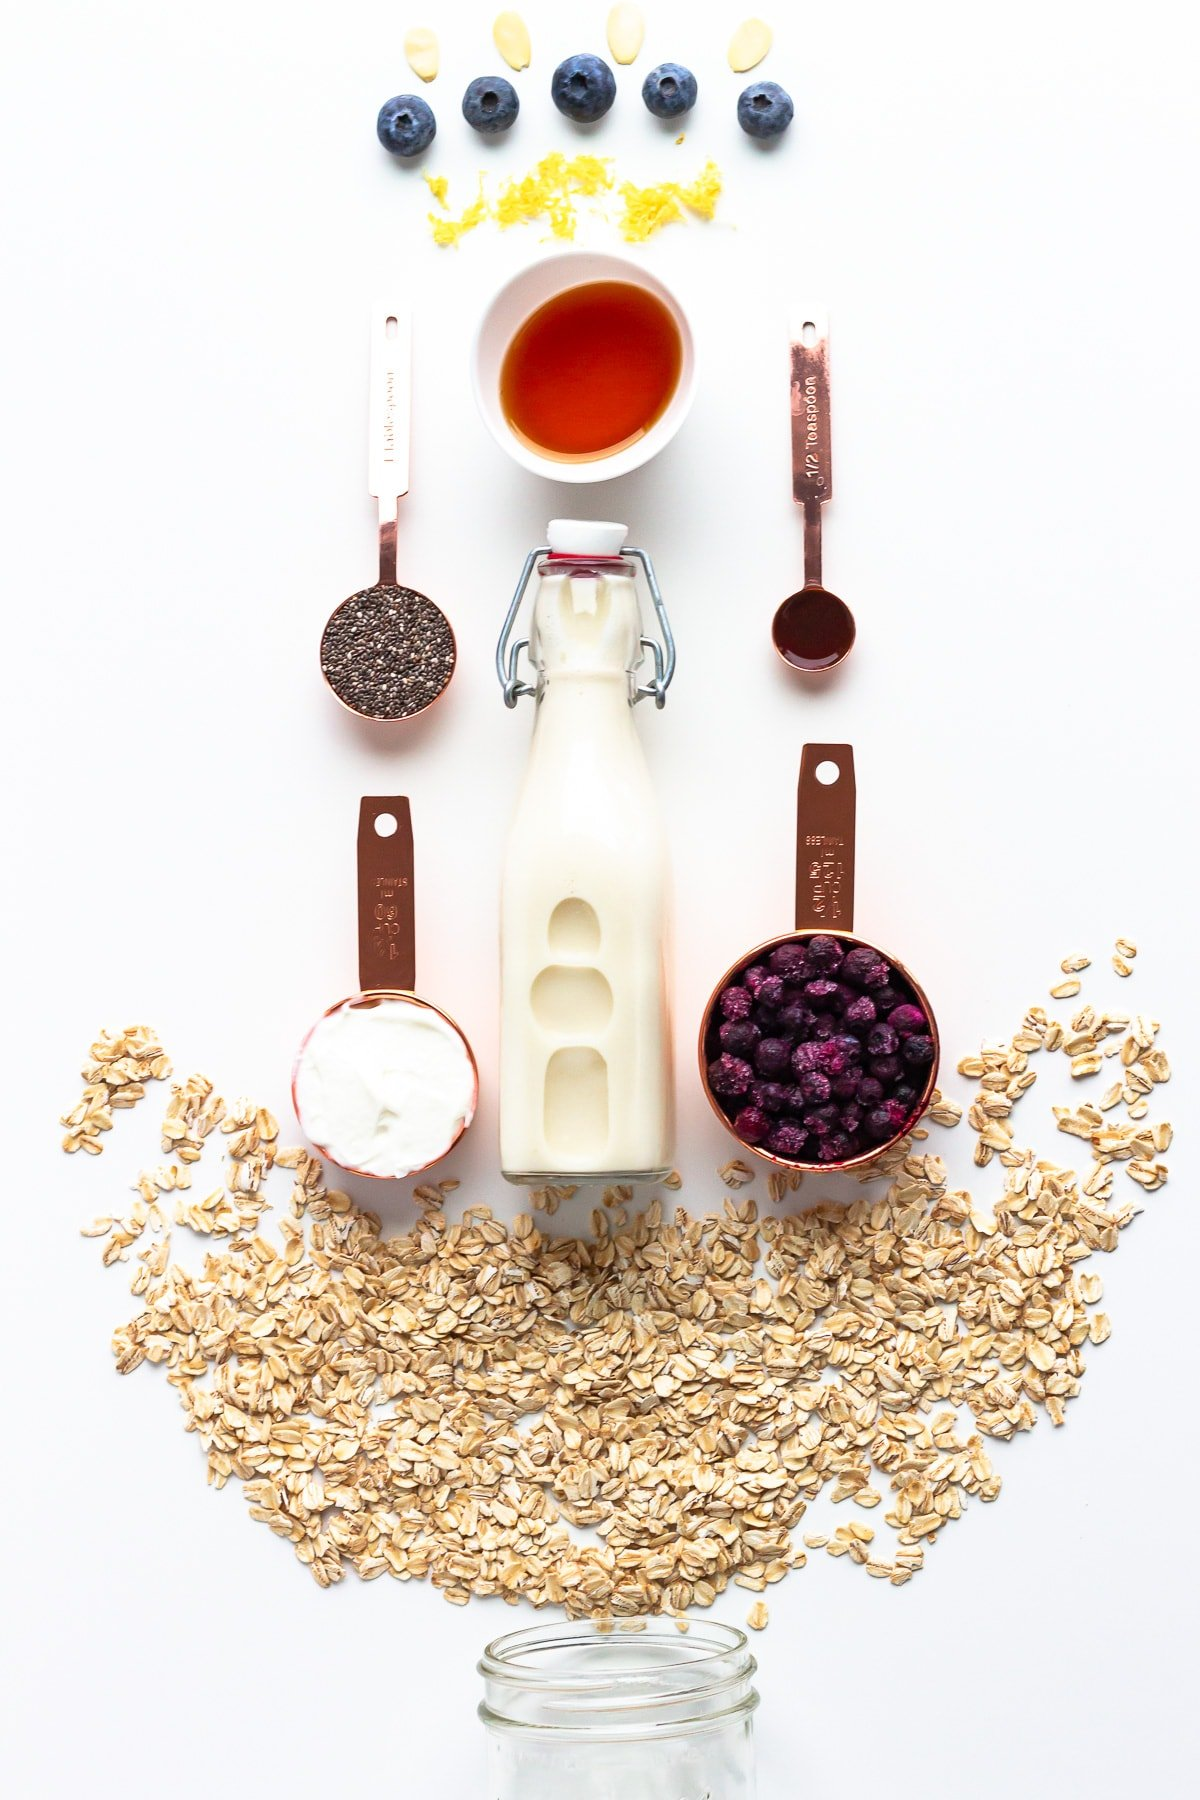 Ingredients needed to make blueberry overnight oats.